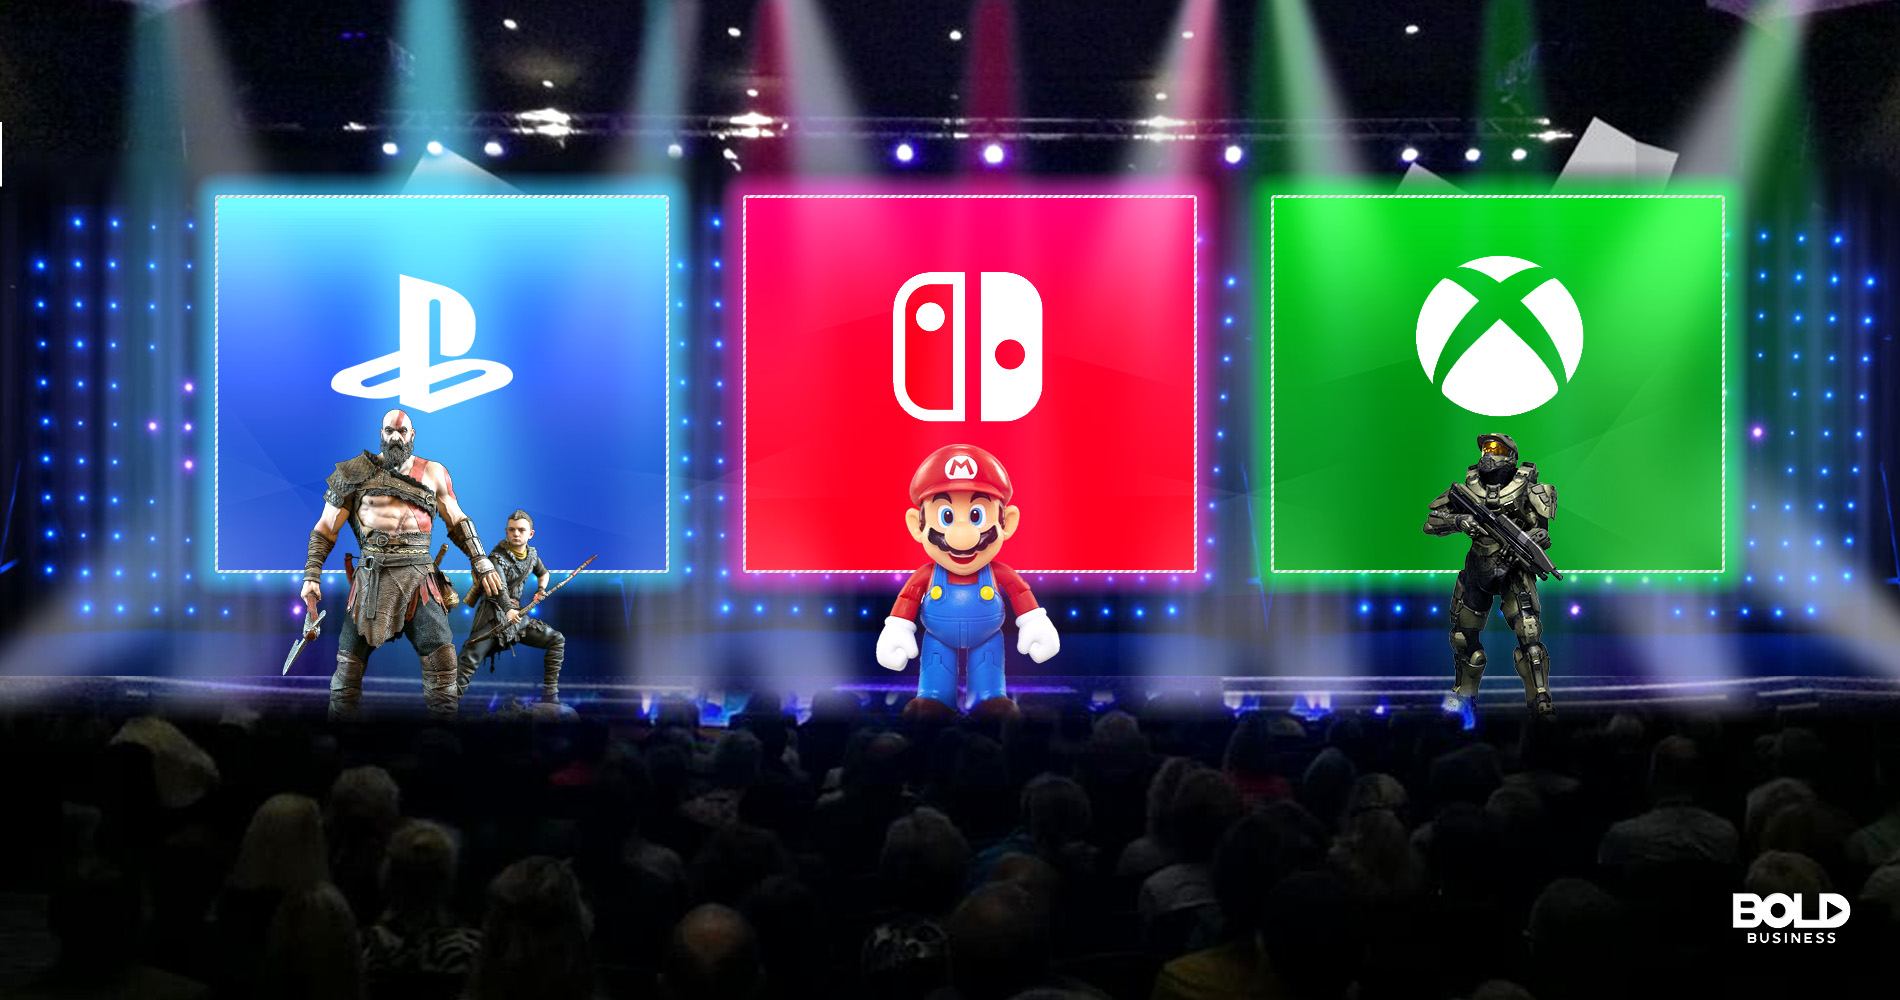 Microsoft, Sony and Nintendo will work together to protect gamers from toxicity, criminals and other threats